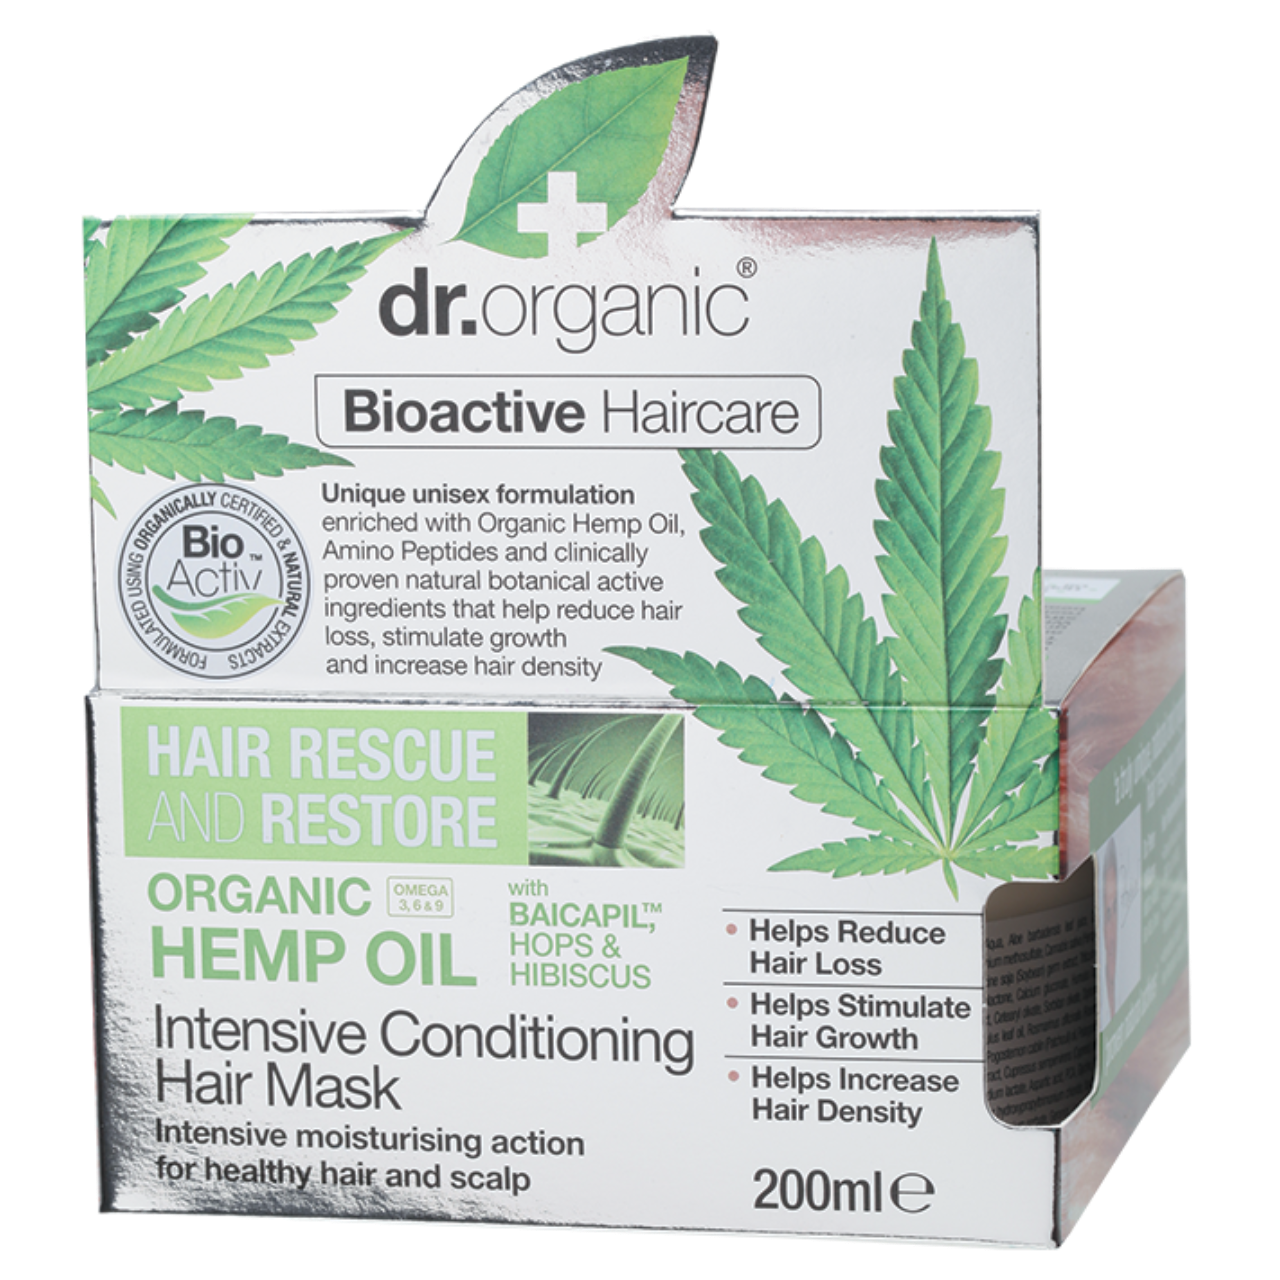 Dr Organic Hemp Oil Intensive Conditioning Hair Mask